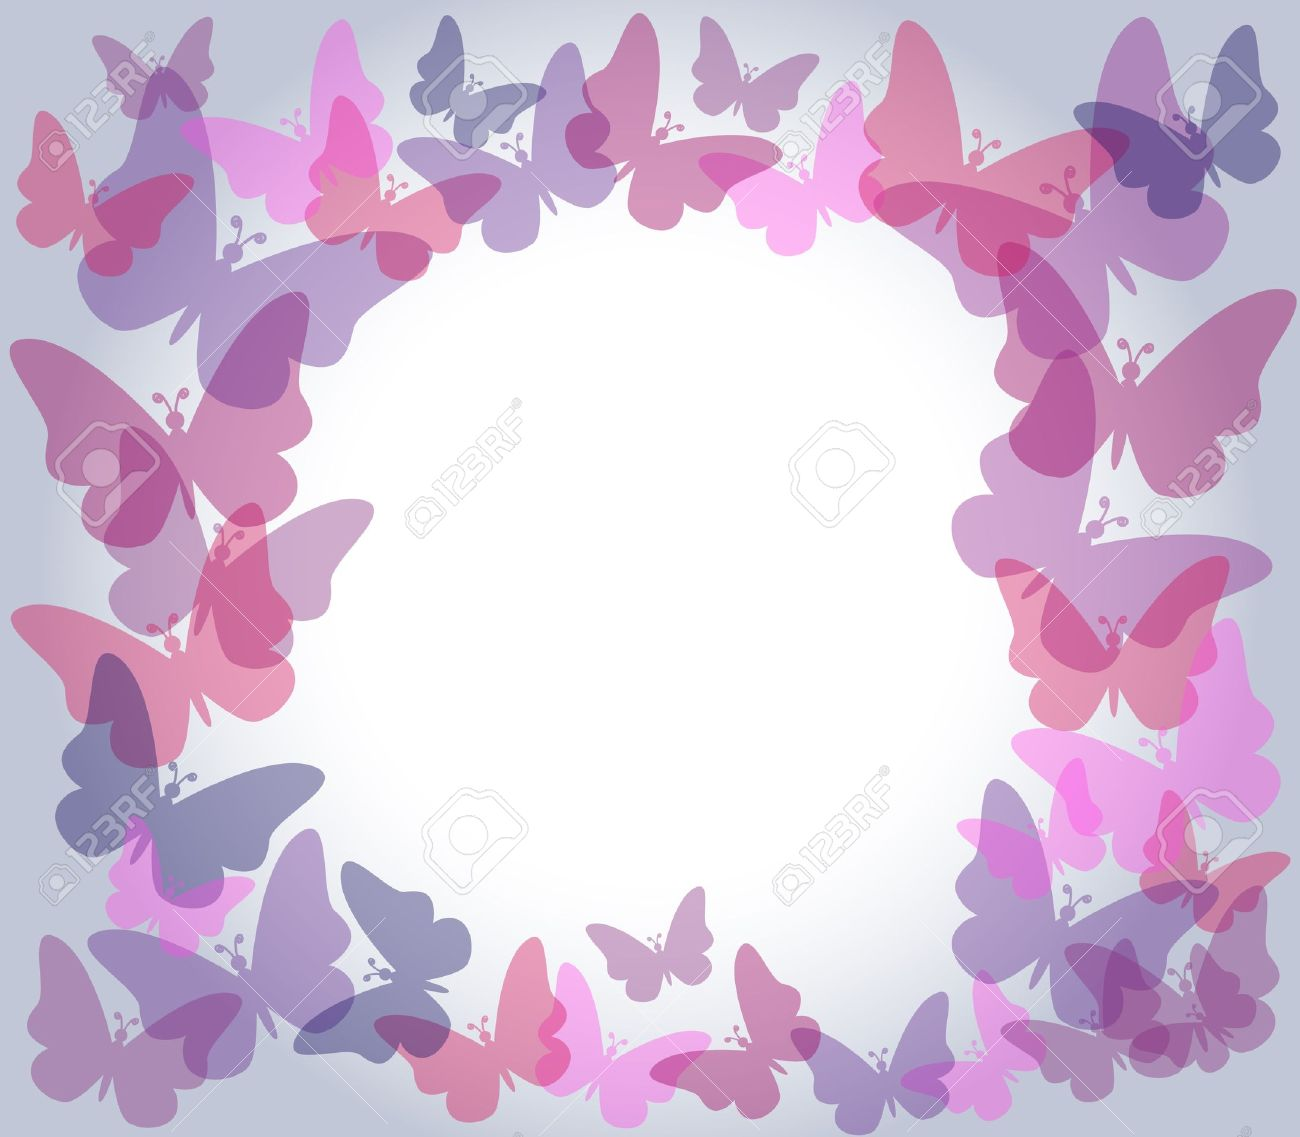 beautiful nature frame with colorful transparent butterflies in shades of pink and purple over light gradient